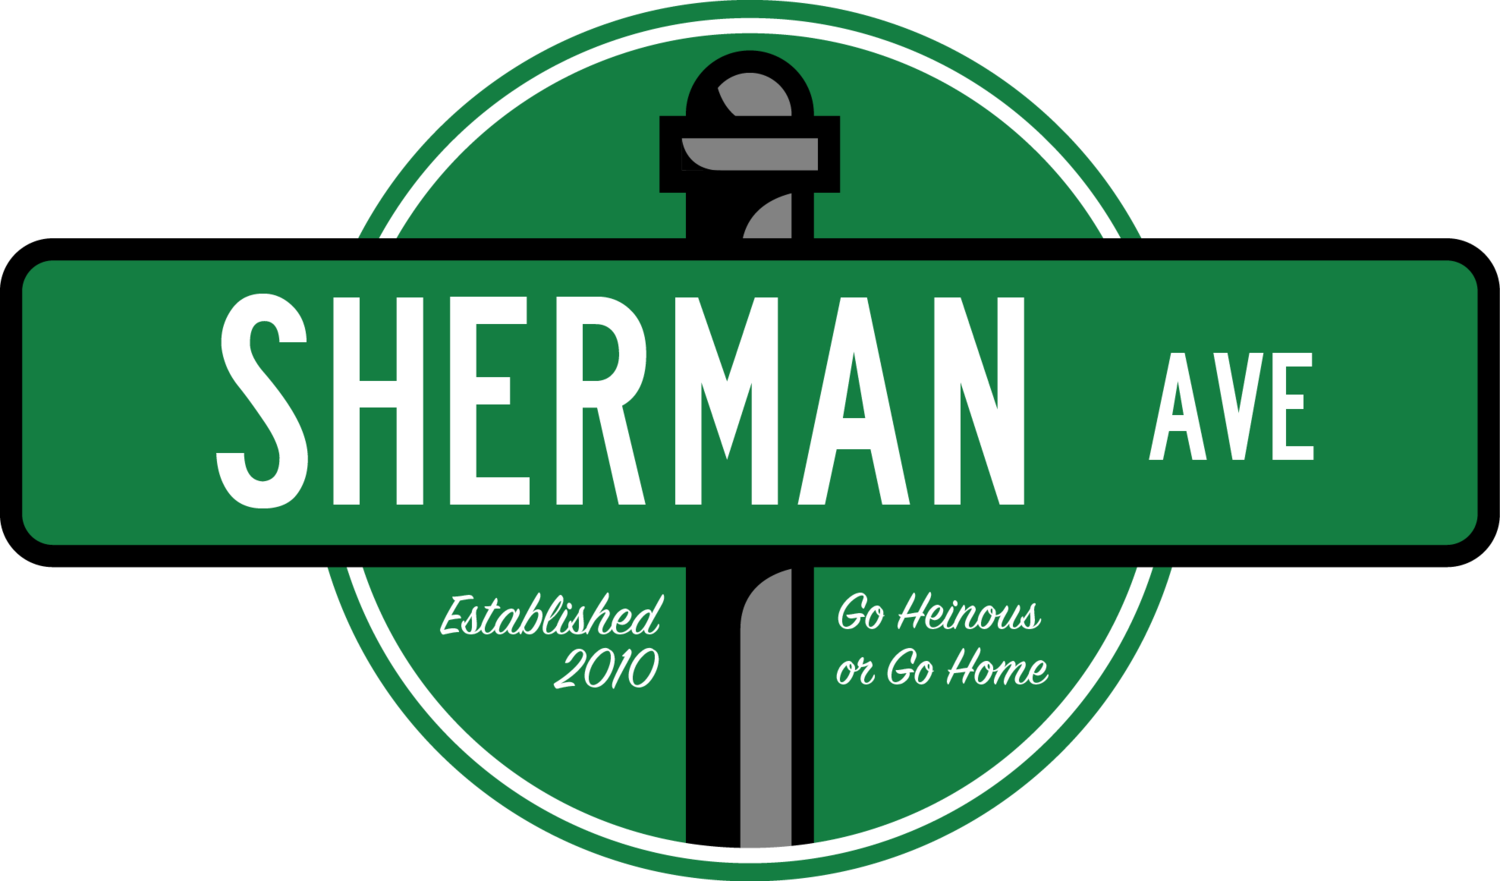 Sherman Ave